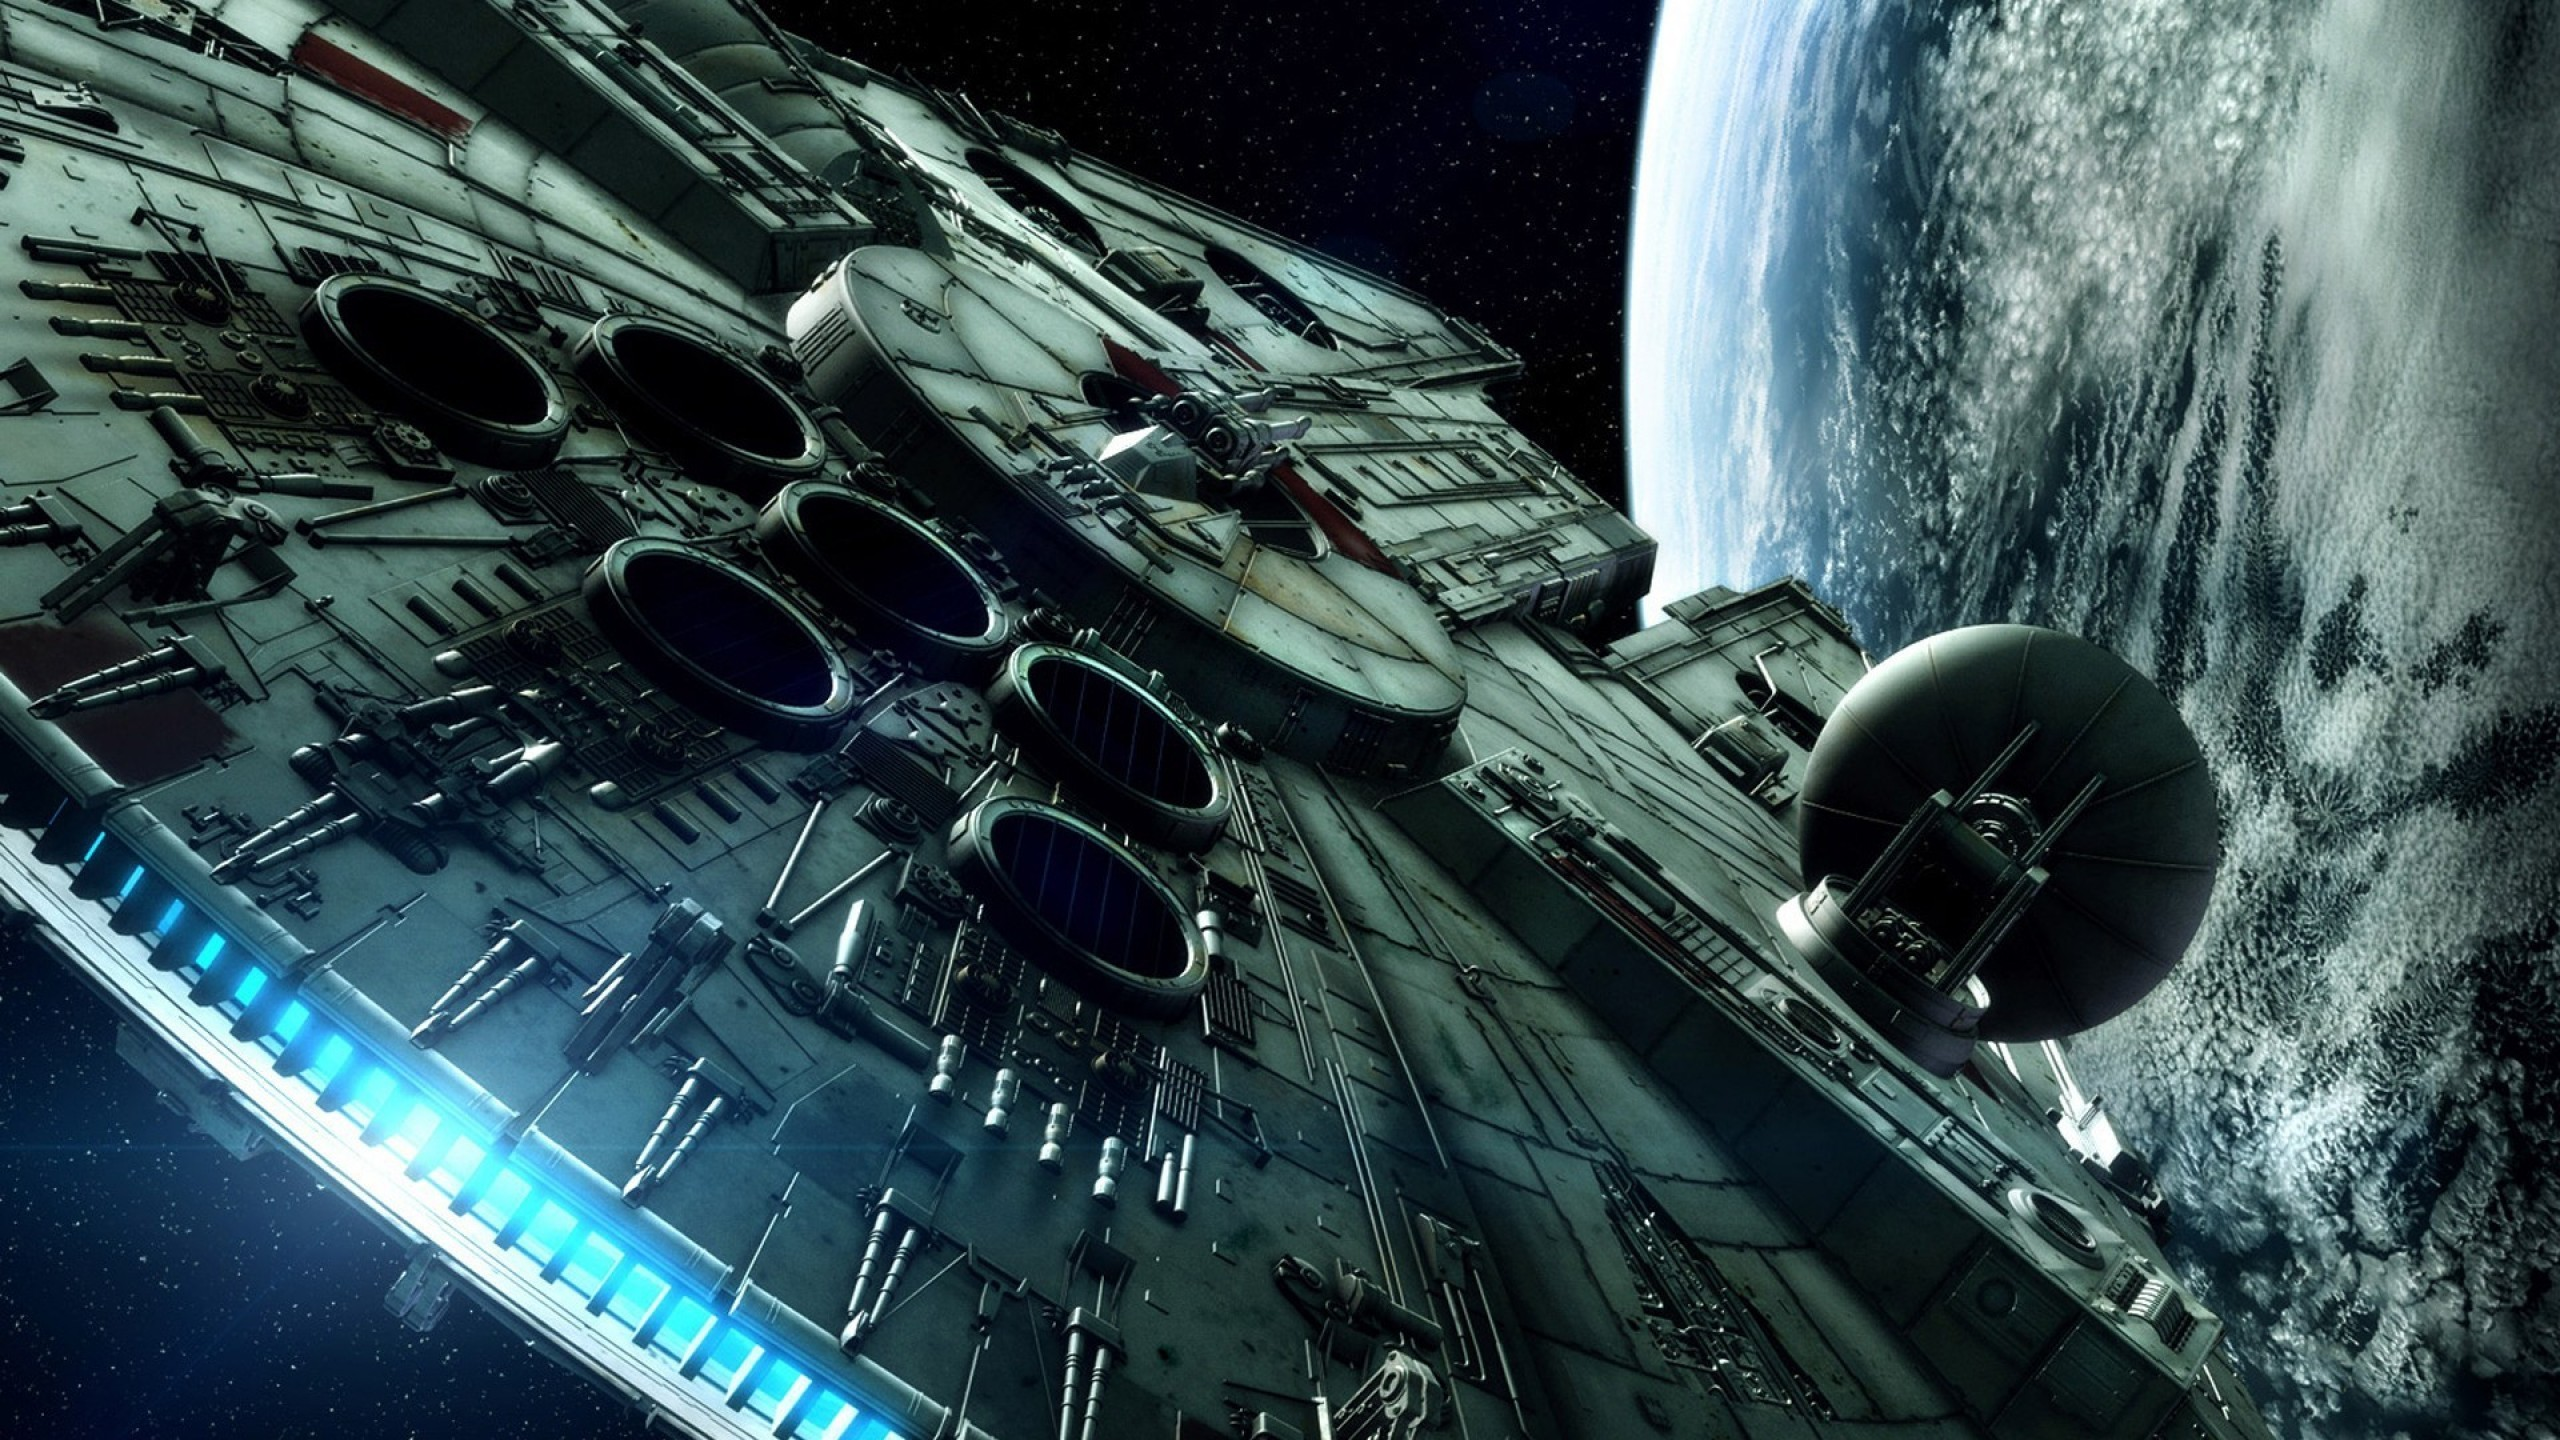 10 New Star Wars Clone Army Wallpaper Full Hd 1080p For Pc: Star Wars Wallpaper 2560x1440 ·① Download Free Amazing HD